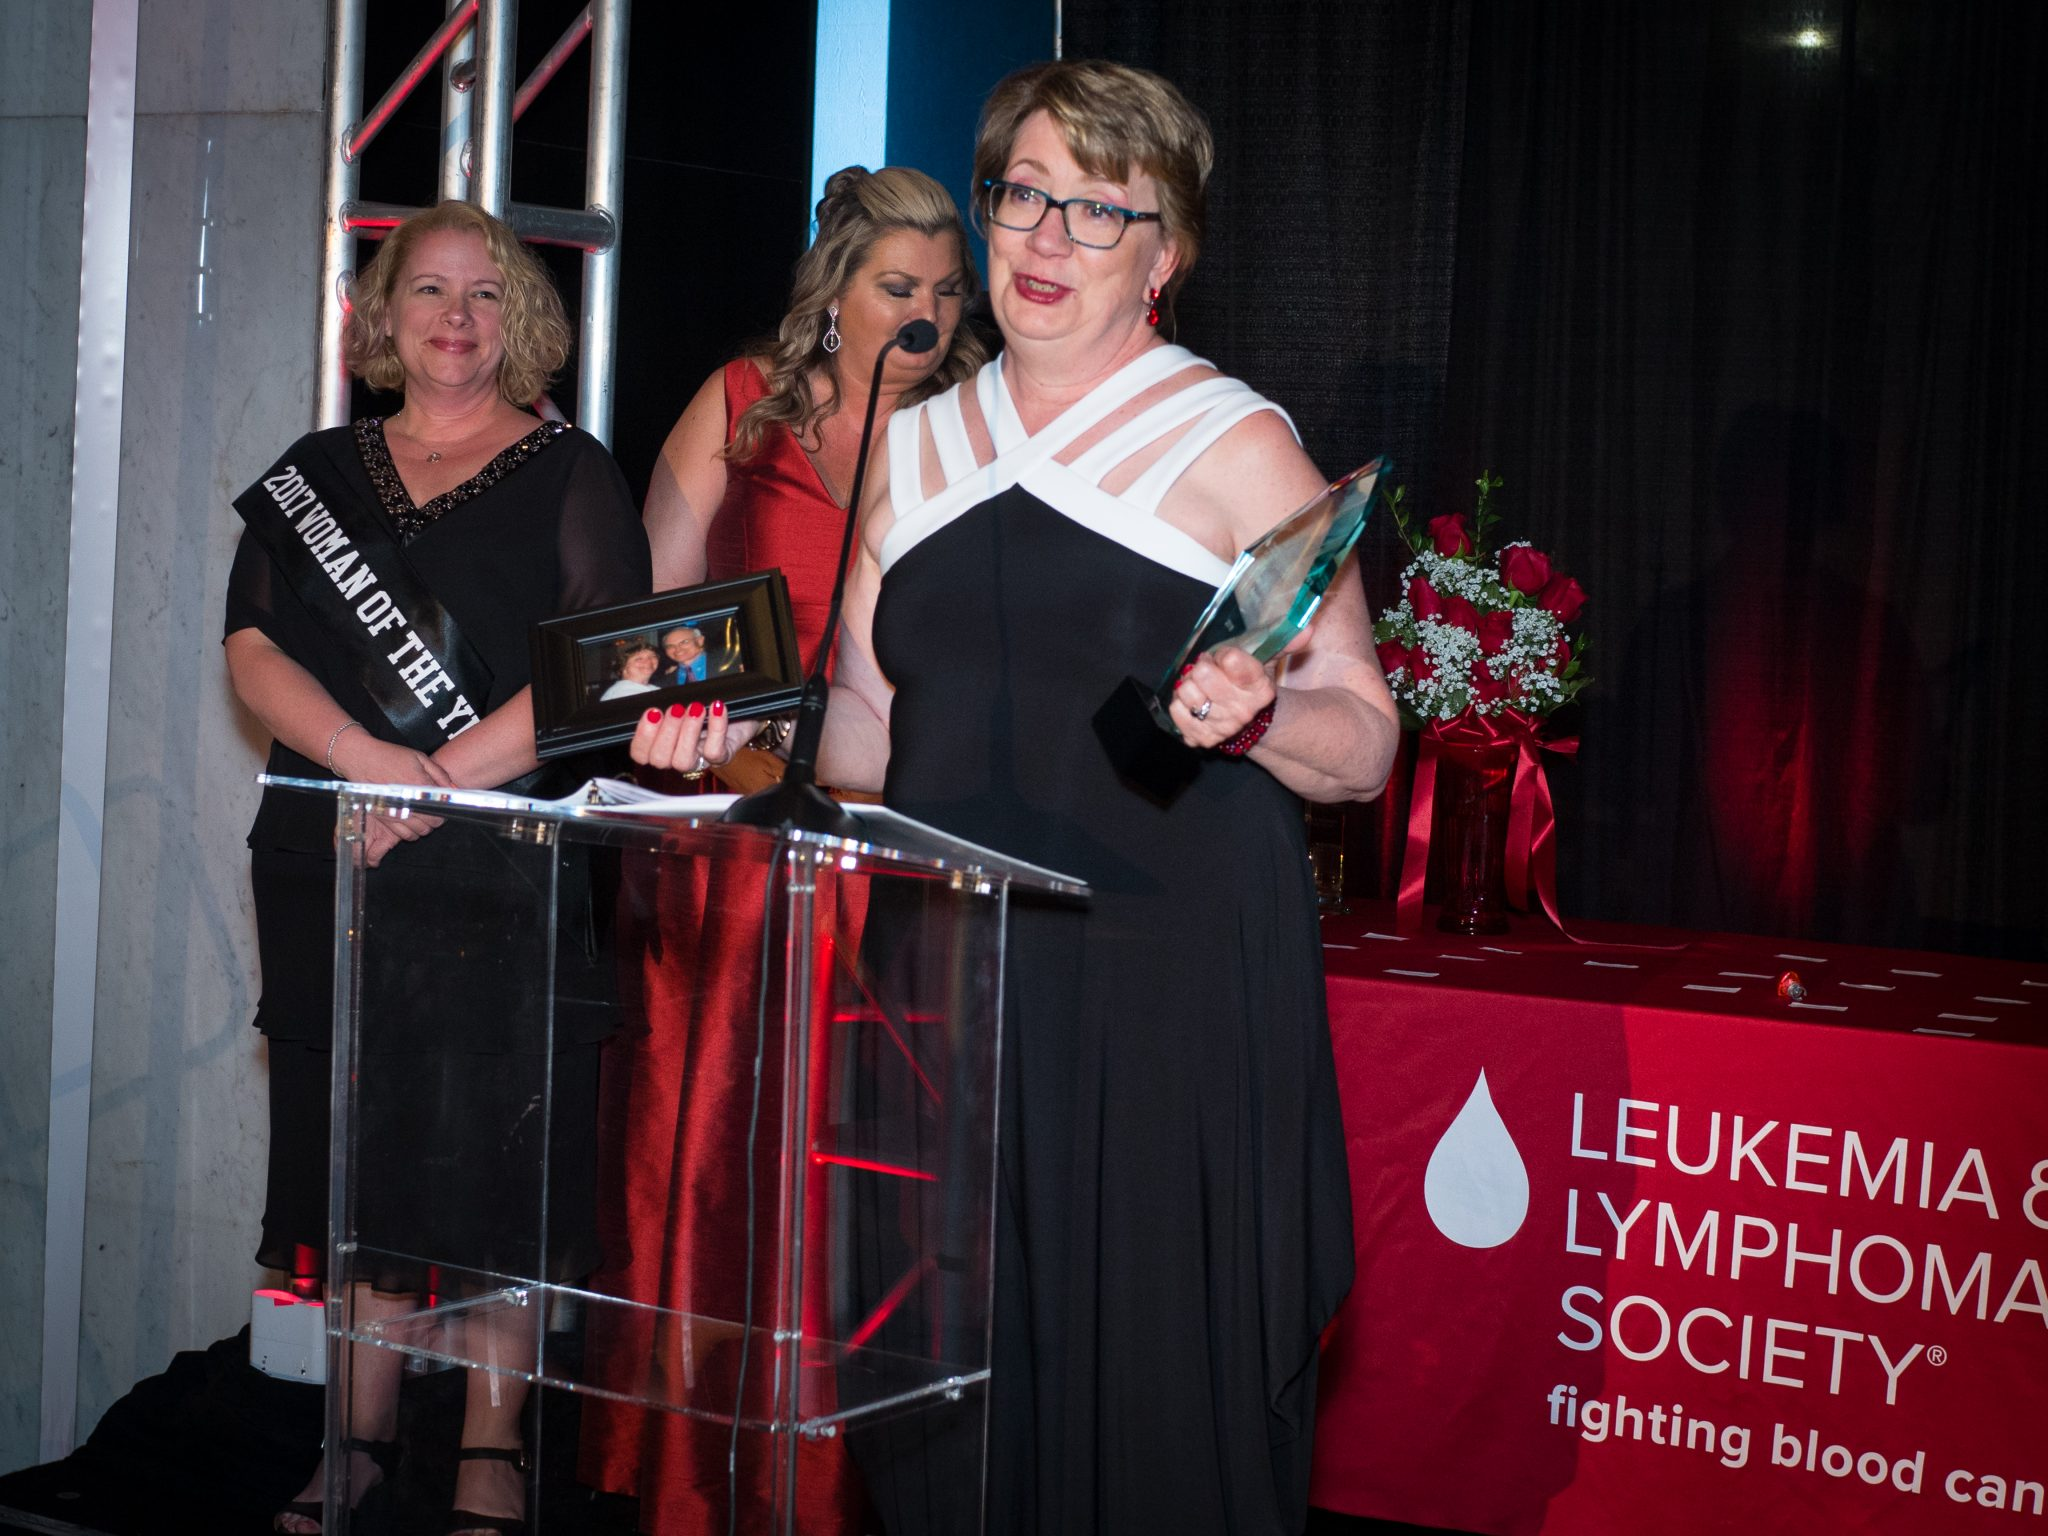 Mary Cushing Doherty receiving her award for LLS woman of the year in PA